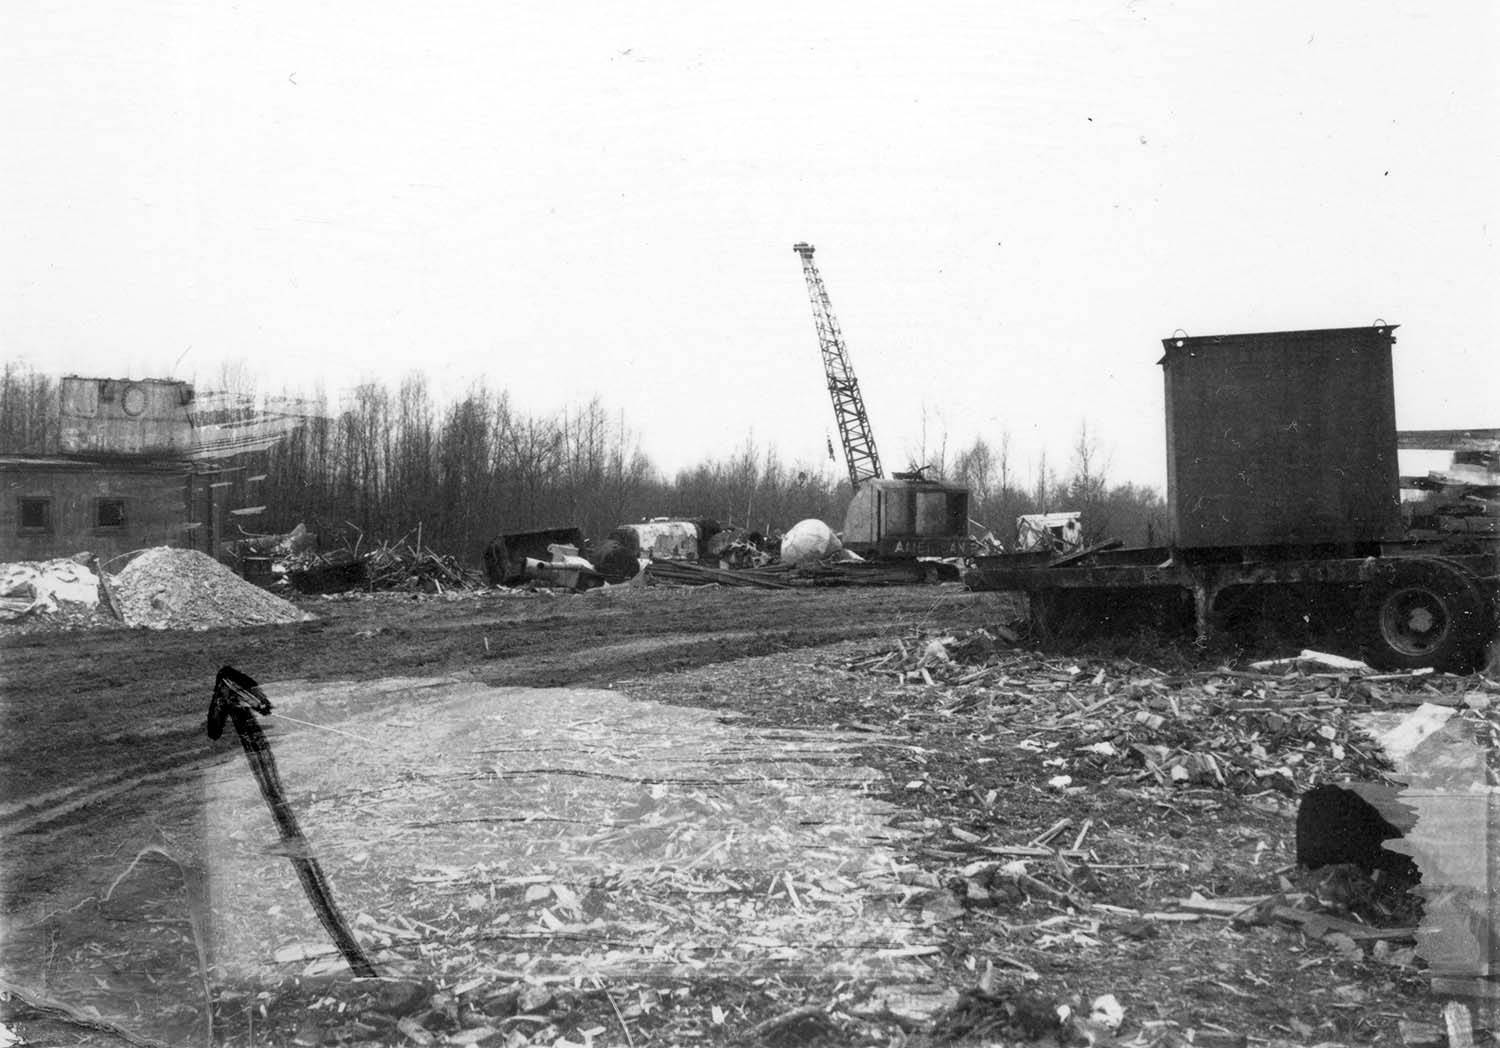 200 block Prior Street N/S and 200 block Union Street S/S, Nov. 14, 1969. Arrow on photograph indicates gravel dumped by A.B.C. Salvage Truck. Reference code COV-S168-: CVA 203-31